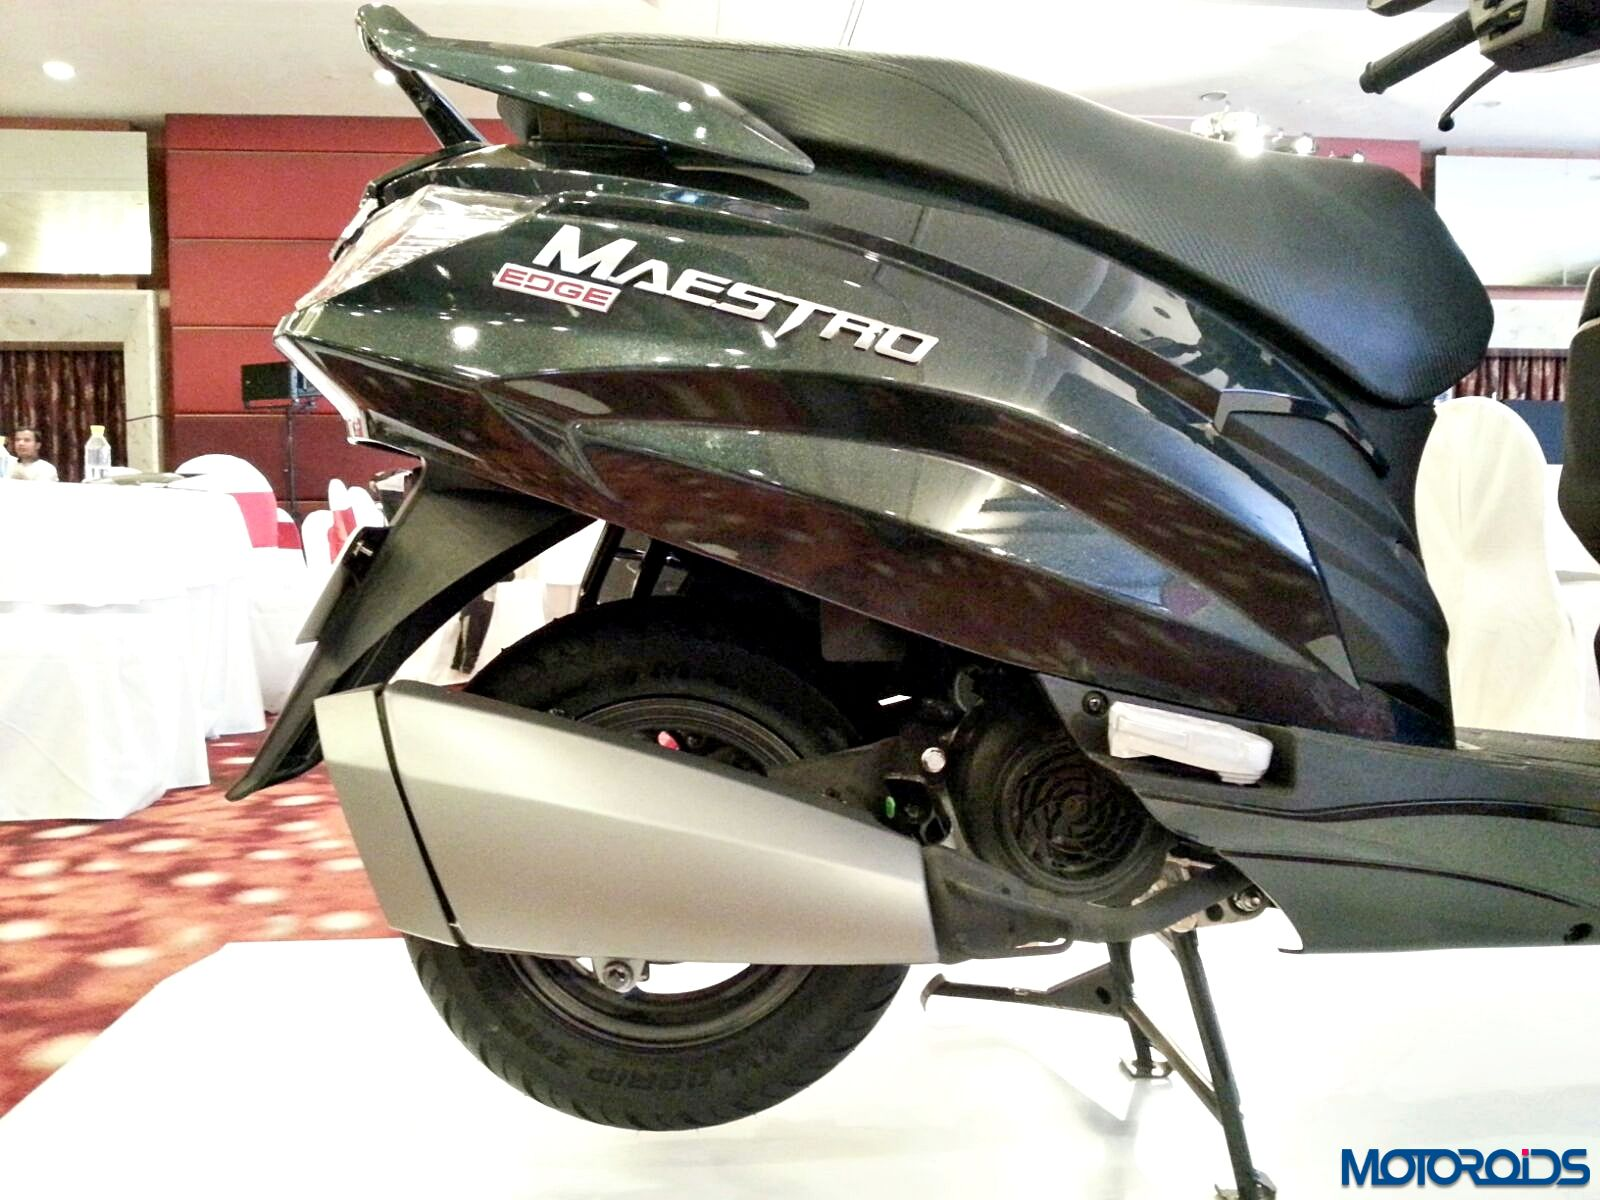 4ps of hero honda One of the bone of contentions between hero and honda was the latter's restriction on the former when it came to exports post the divorce from honda, hero now has freedom to set up its own international operations and export actively.